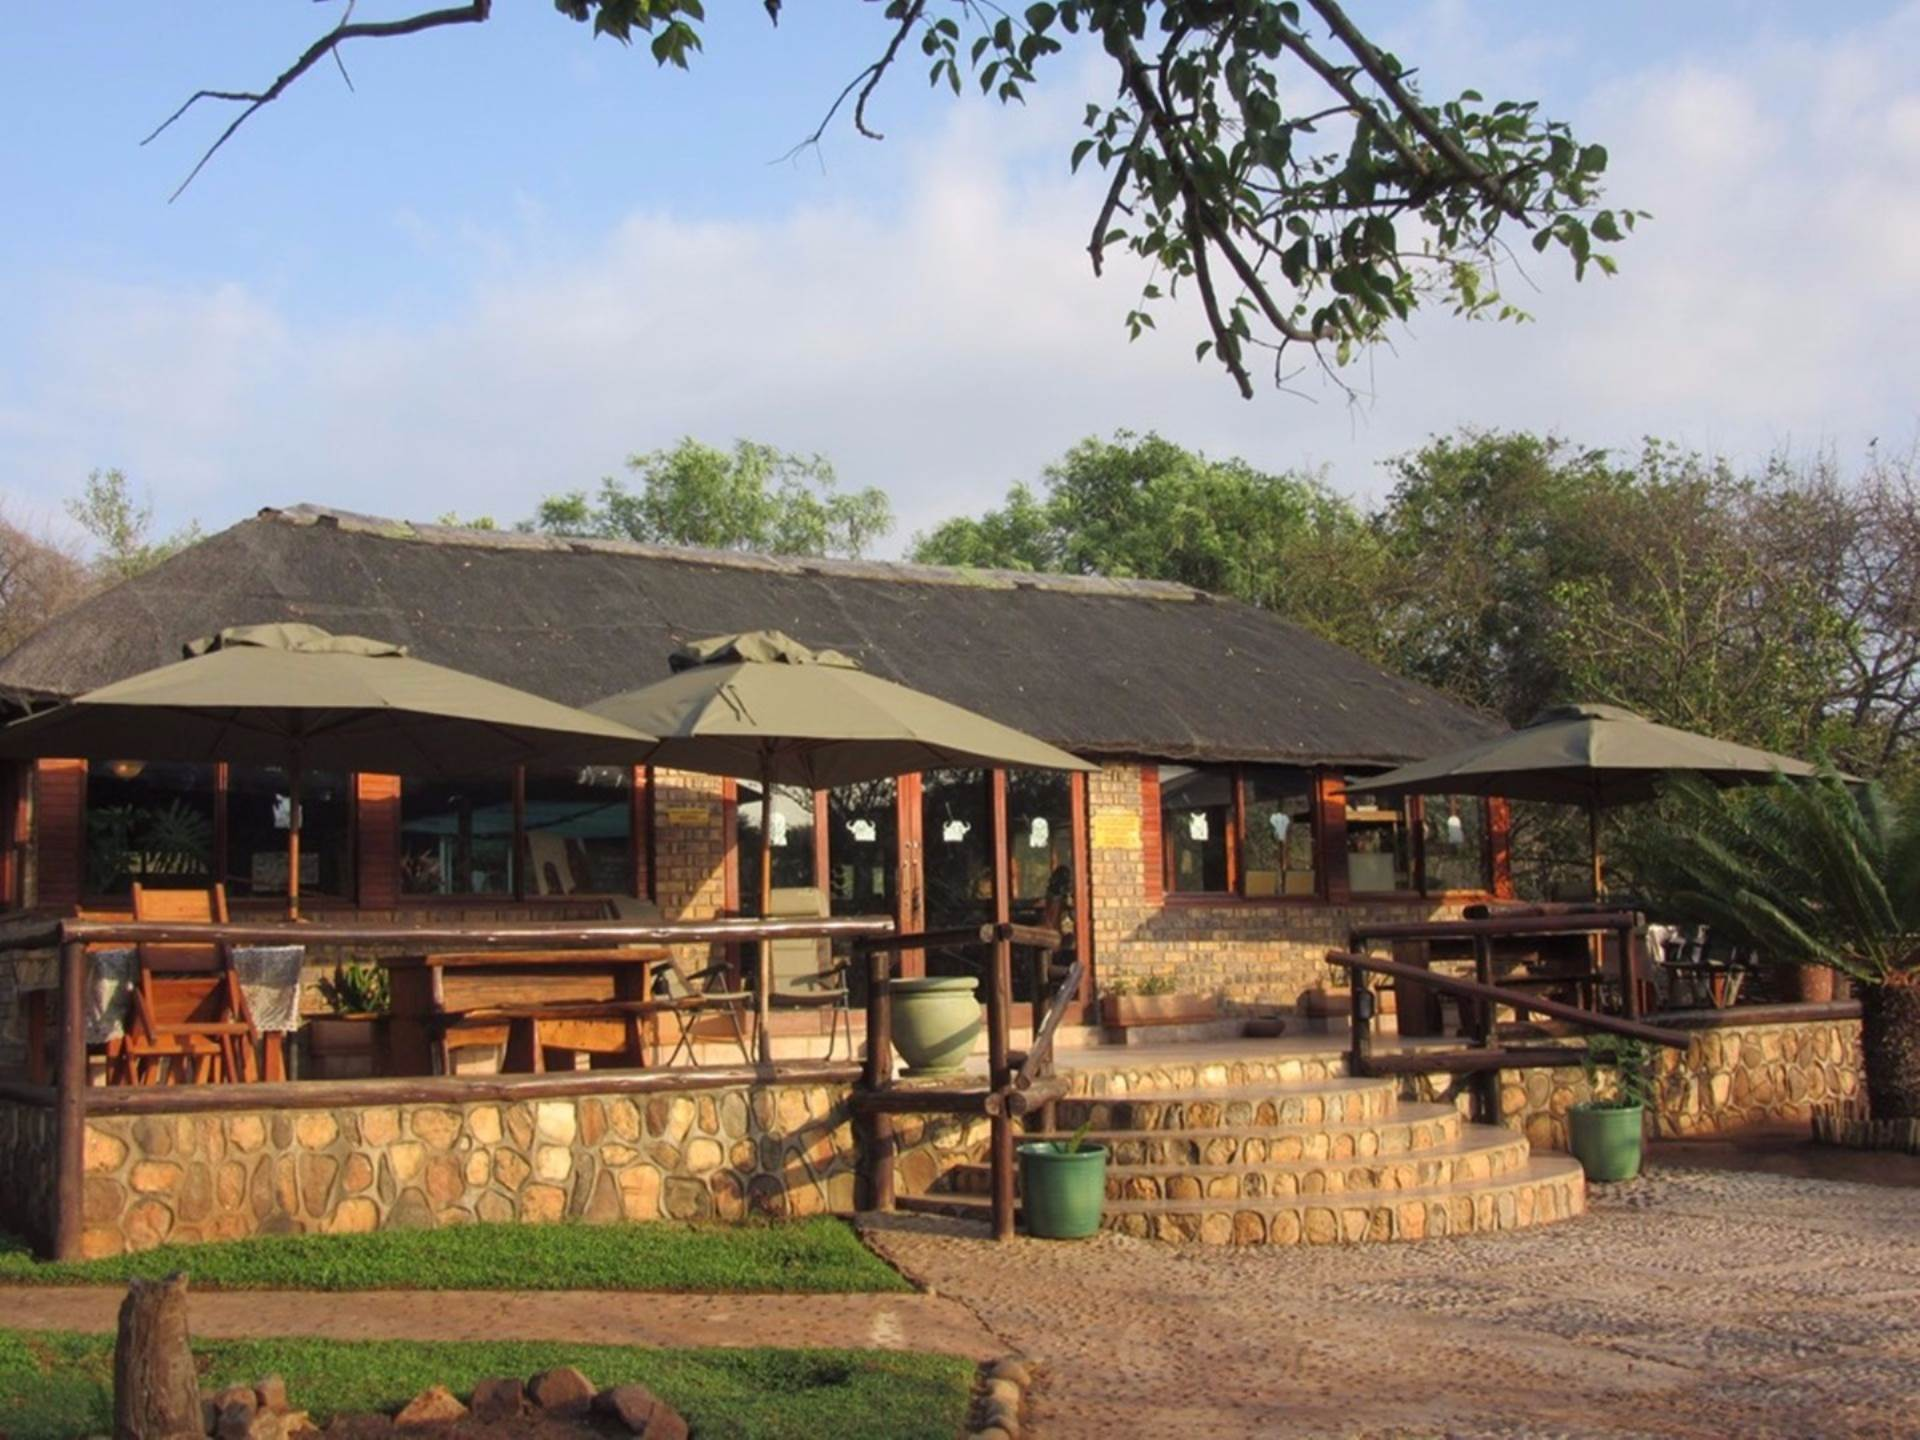 7 BedroomGame Farm Lodge For Sale In Grietjie Game Reserve